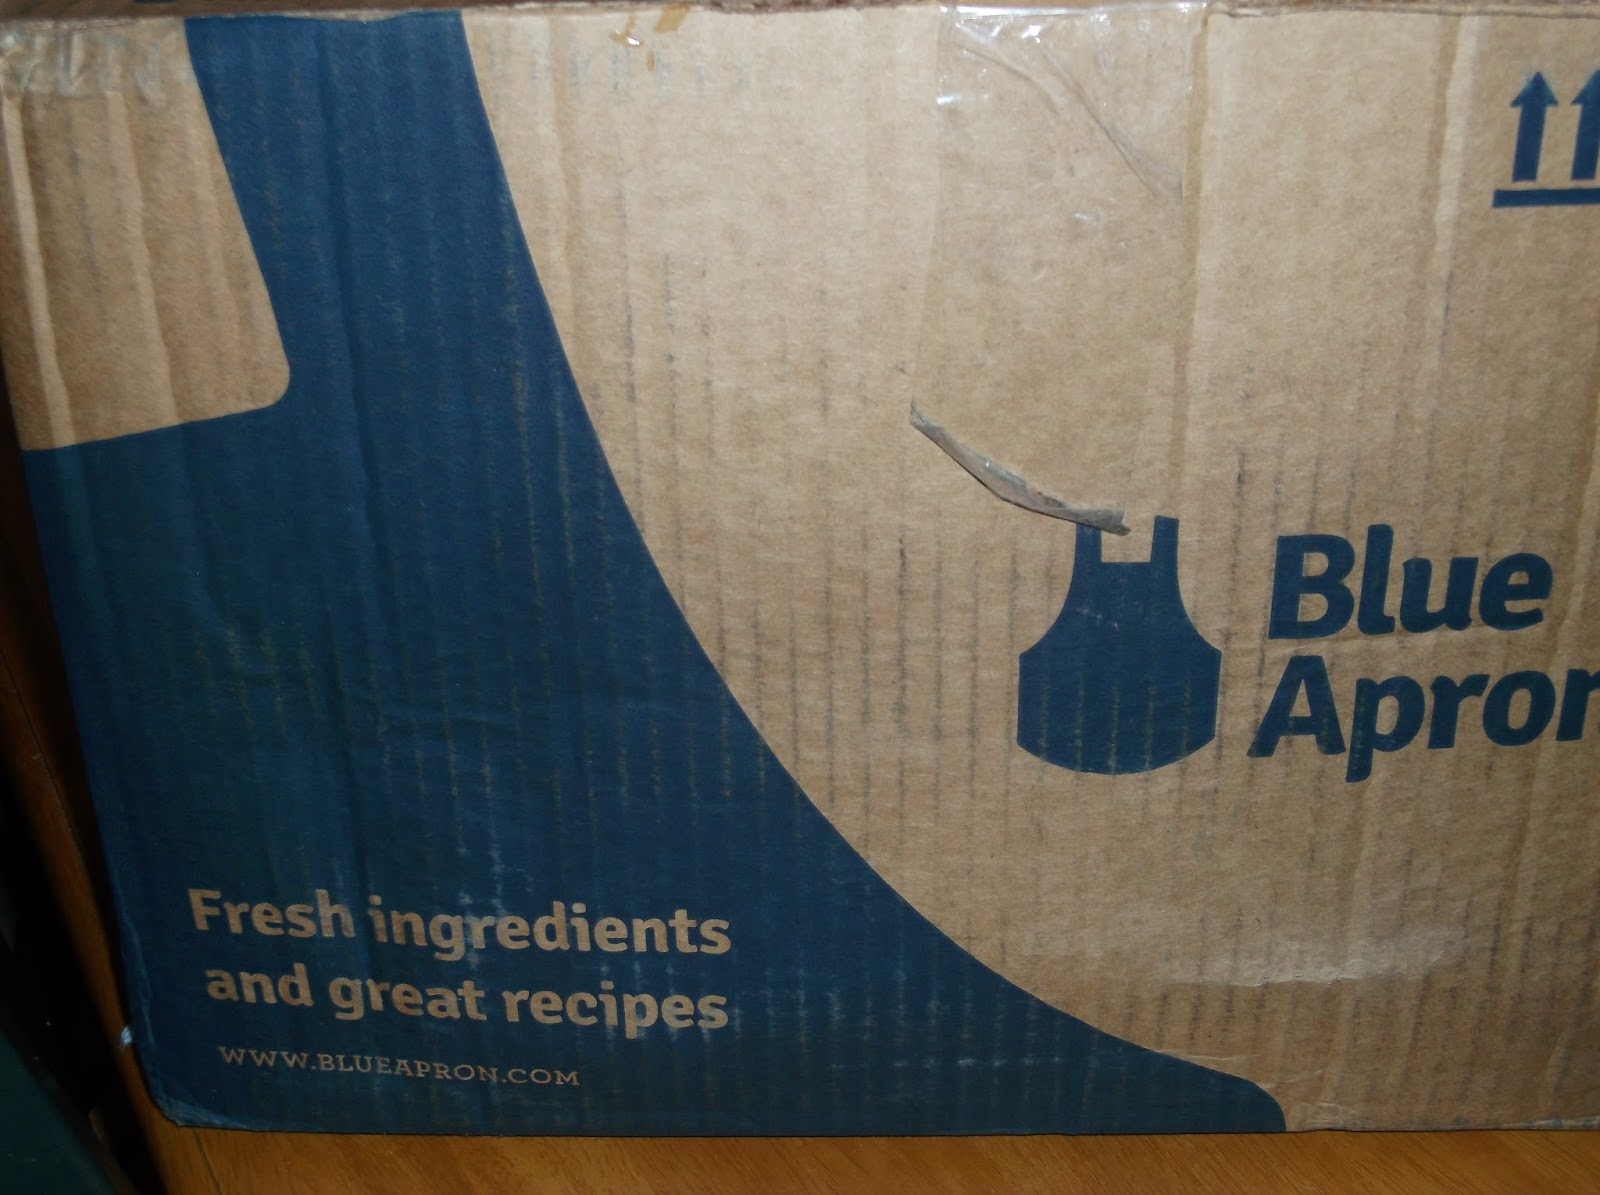 Blue apron dog food - As One Of The World S Leading In At Home Meal Delivery Service Blue Apron Which Started In 2012 When You Order From Blue Apron They Send You A Step By Step